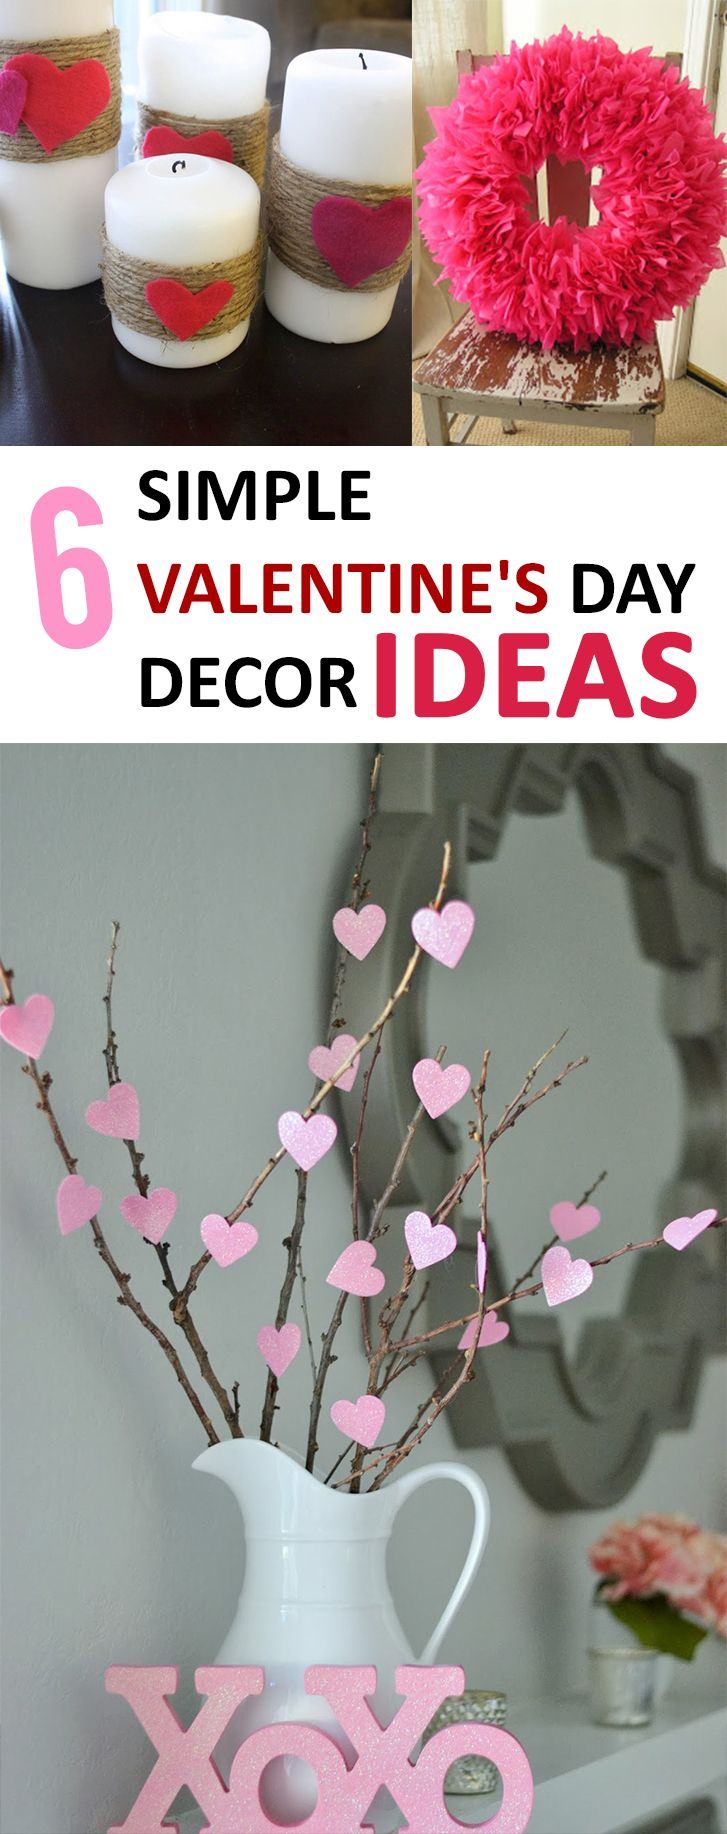 25 Unique Valentines Day Decorations Ideas On Pinterest Diy Valentine S Paper Hearts And